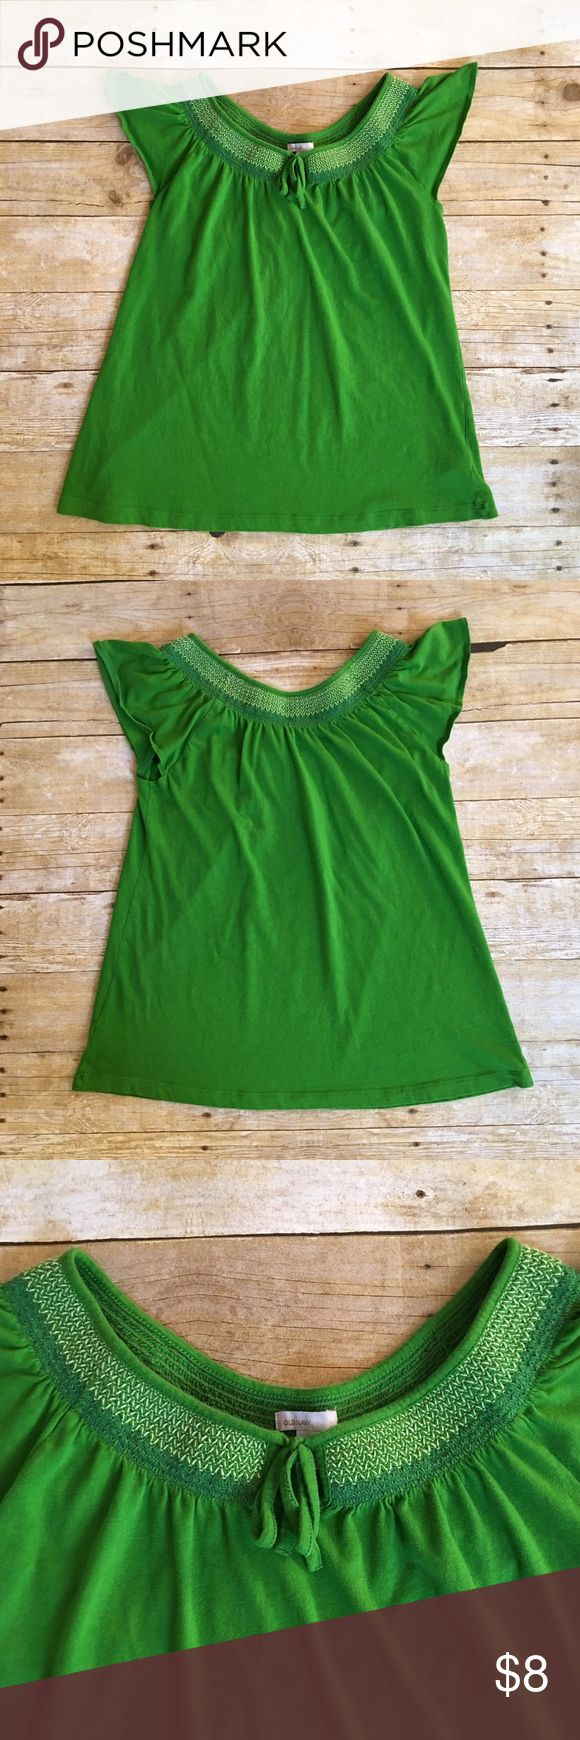 Green Old Navy smocked short sleeve top, medium Very good condition Old Navy green top in a size medium. Has a pretty smocked look along the neckline. No stains or tears, minimal wash wear. If you have any questions, please don't hesitate to ask! Old Navy Tops Tees - Short Sleeve